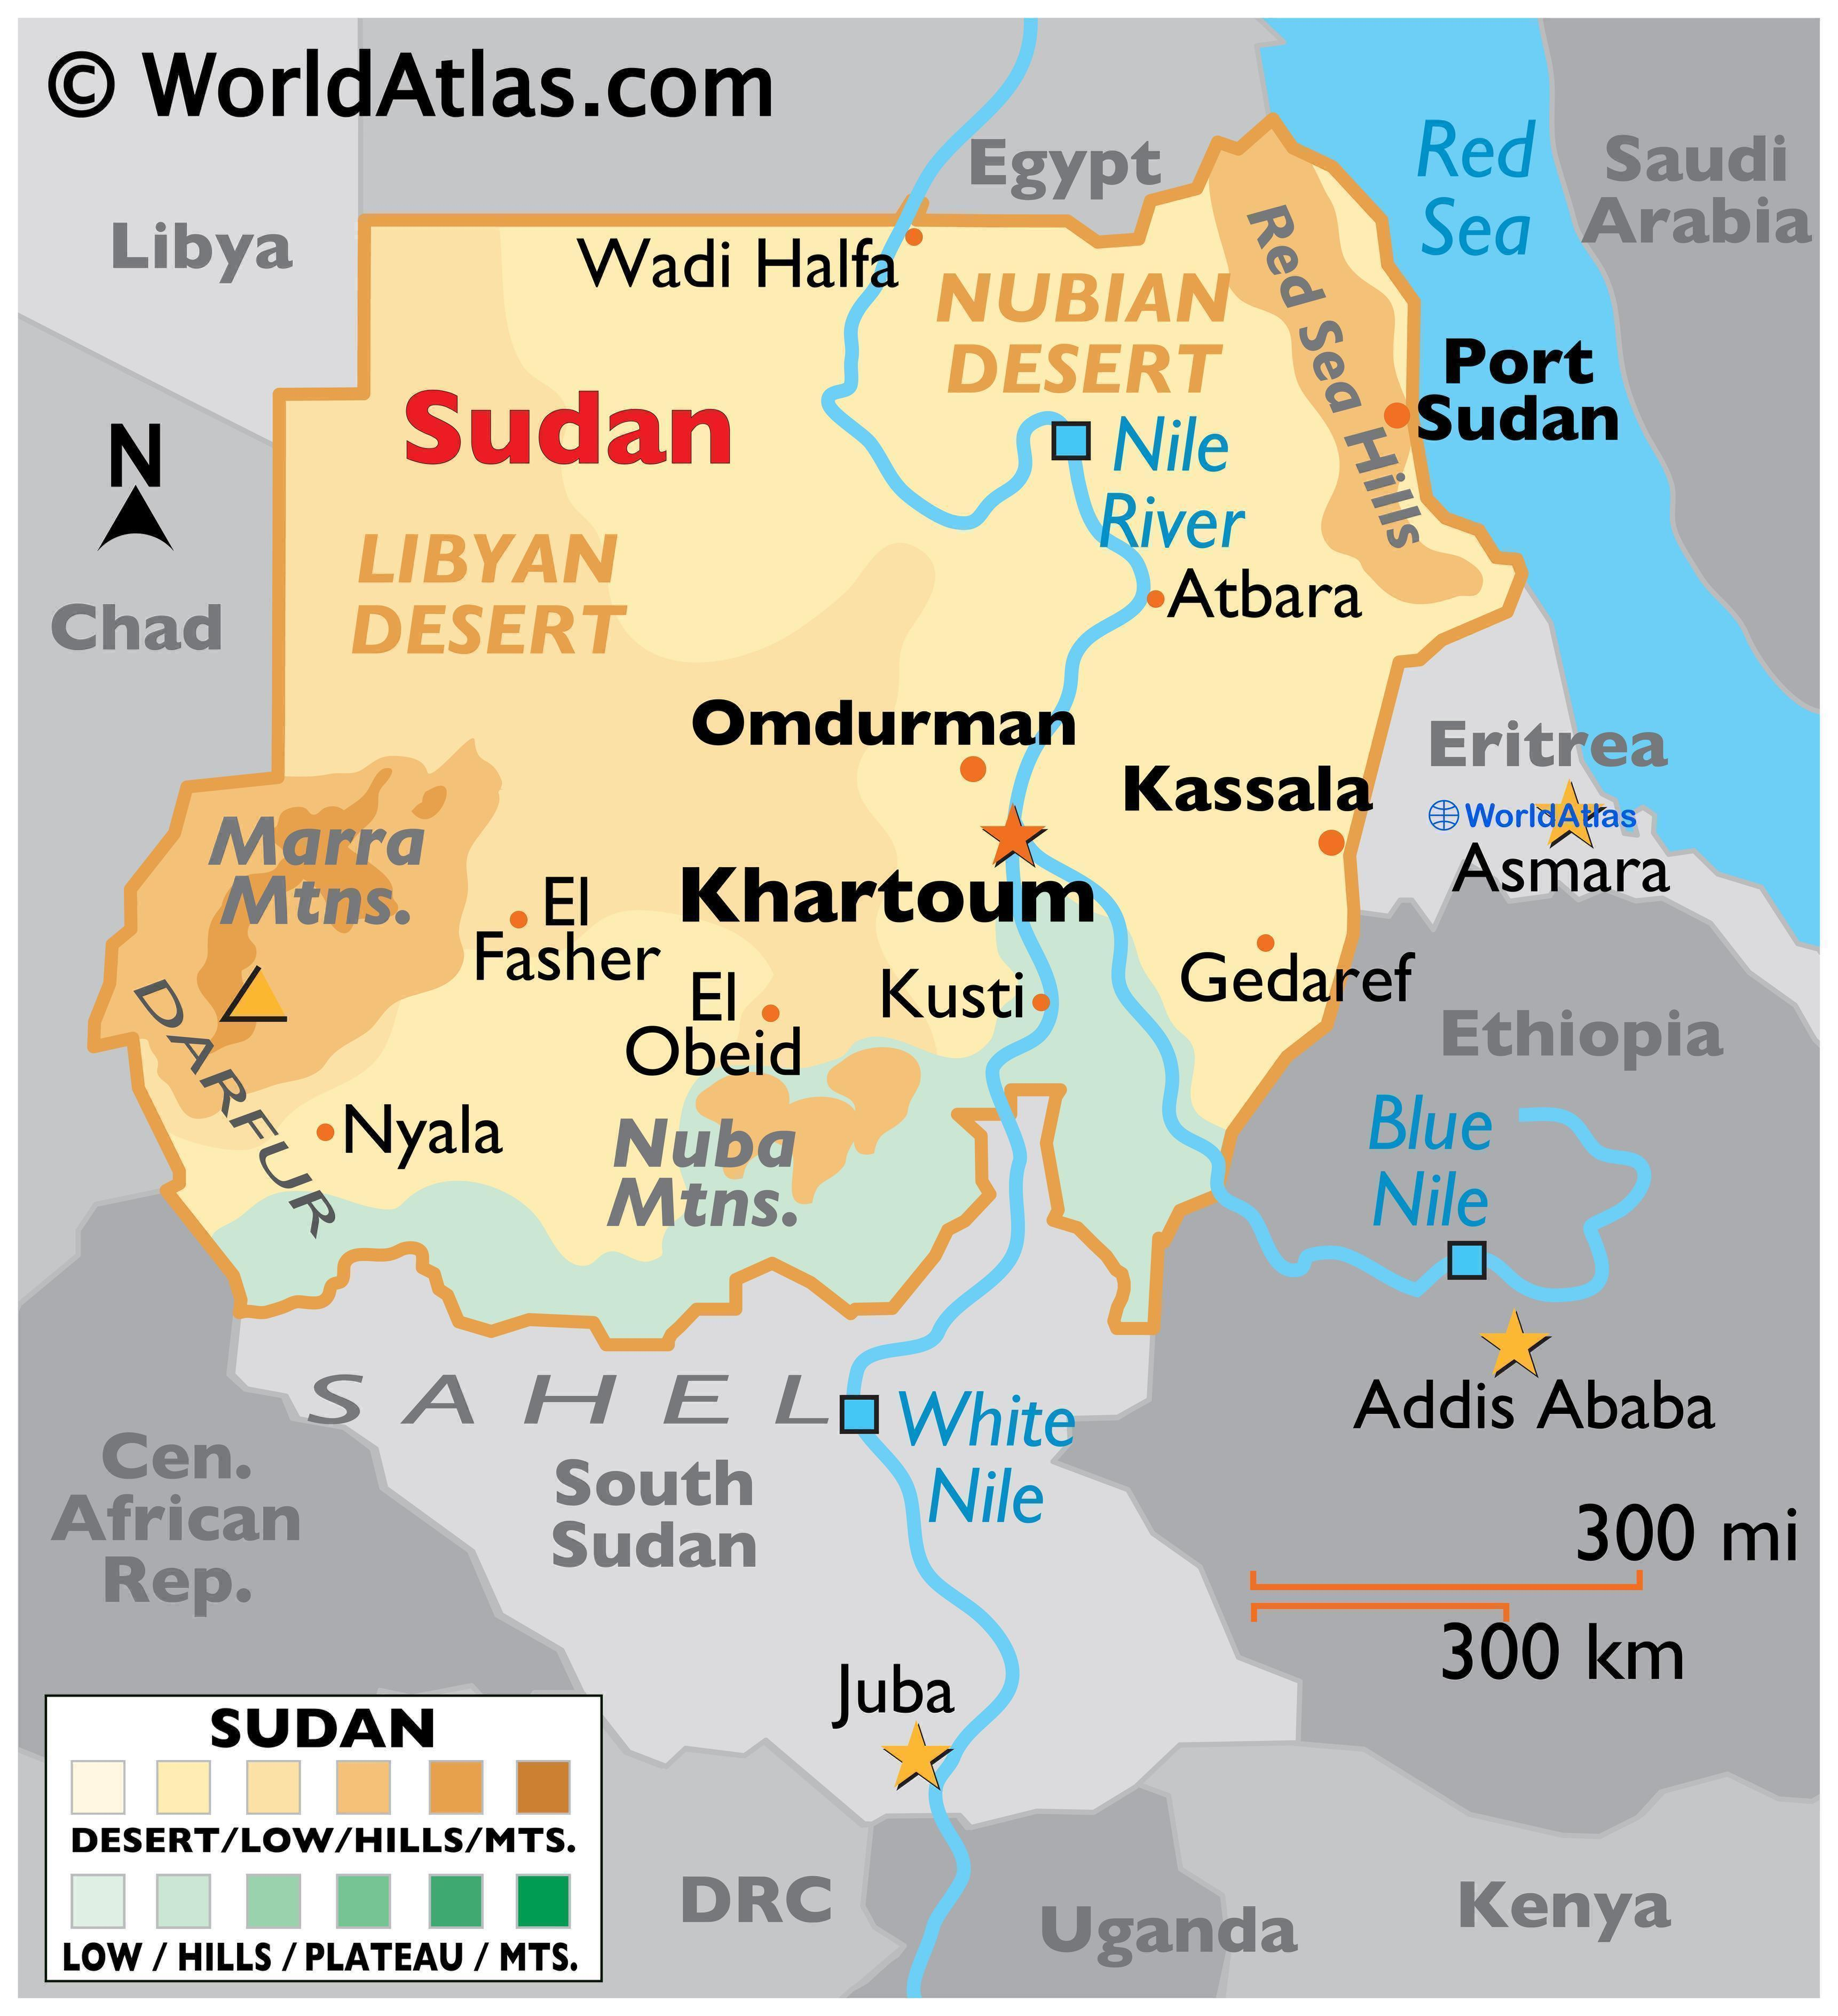 Phyiscal Map of the Sudan with state boundaries. It shows the physical features of Sudan including terrain, mountain ranges, plateaus, deserts, river systems, and major cities.